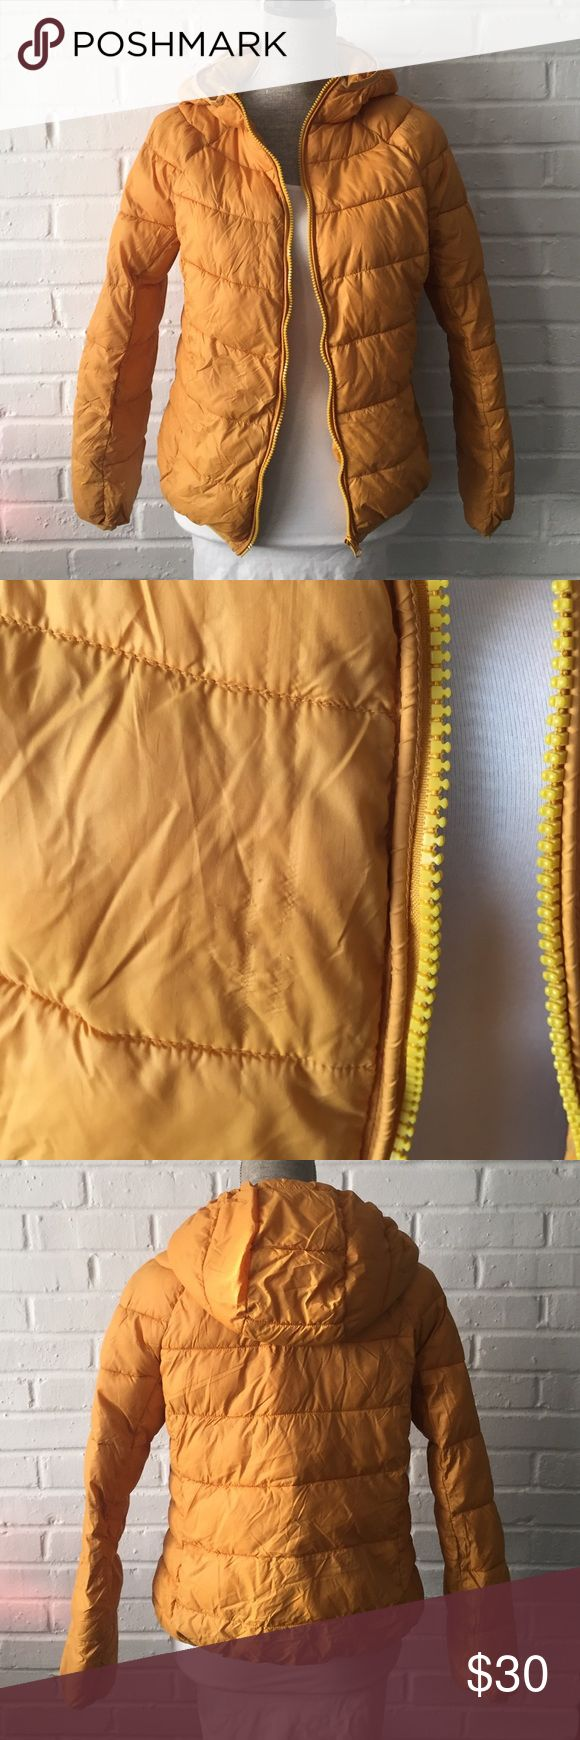 F21 Puffer Jacket F21 Mustard Yellow Puffer Jacket | Size: M | 100% nylon | Gently worn, small snag in front, in good condition | Great paired with grey F21 workout top, comfy leggings & sweet kicks! 🏃🏼♀️ Forever 21 Jackets & Coats Puffers